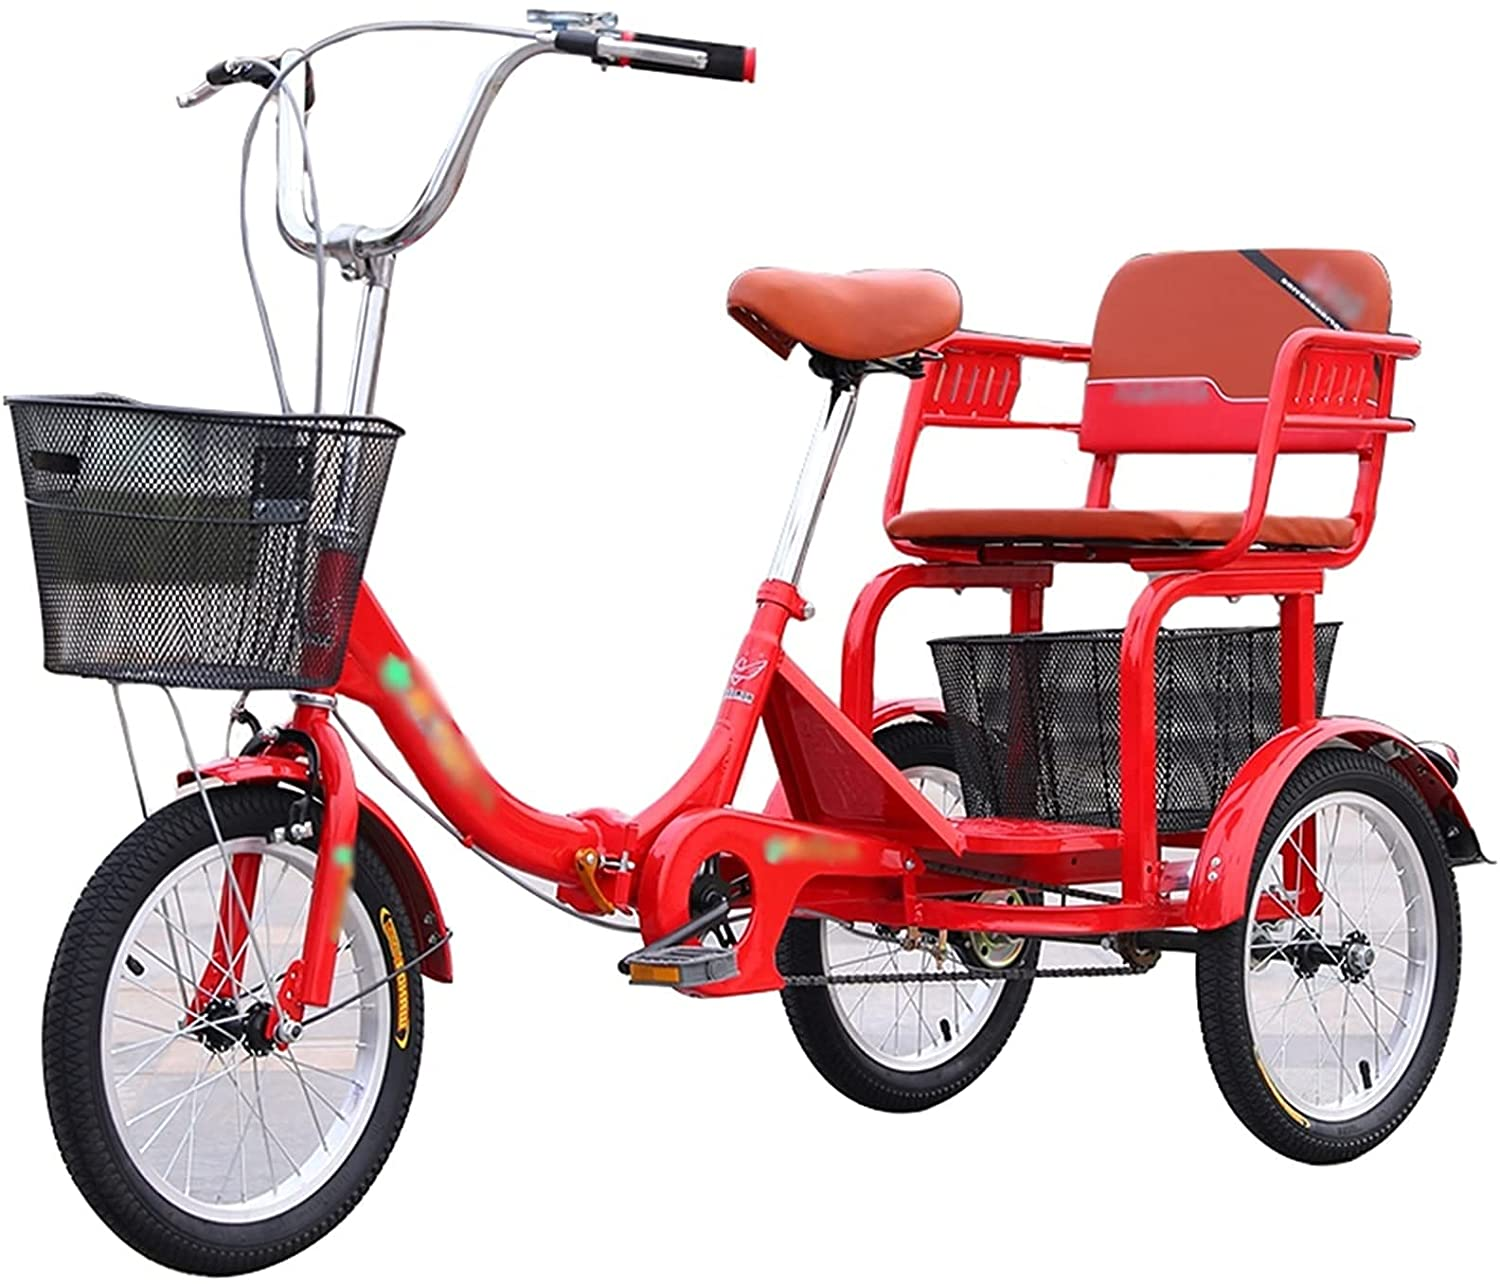 PARTAS Detroit Mall 16 Inch Weekly update Bikes 3 Wheel with Adult Shopping Bicycle Basket